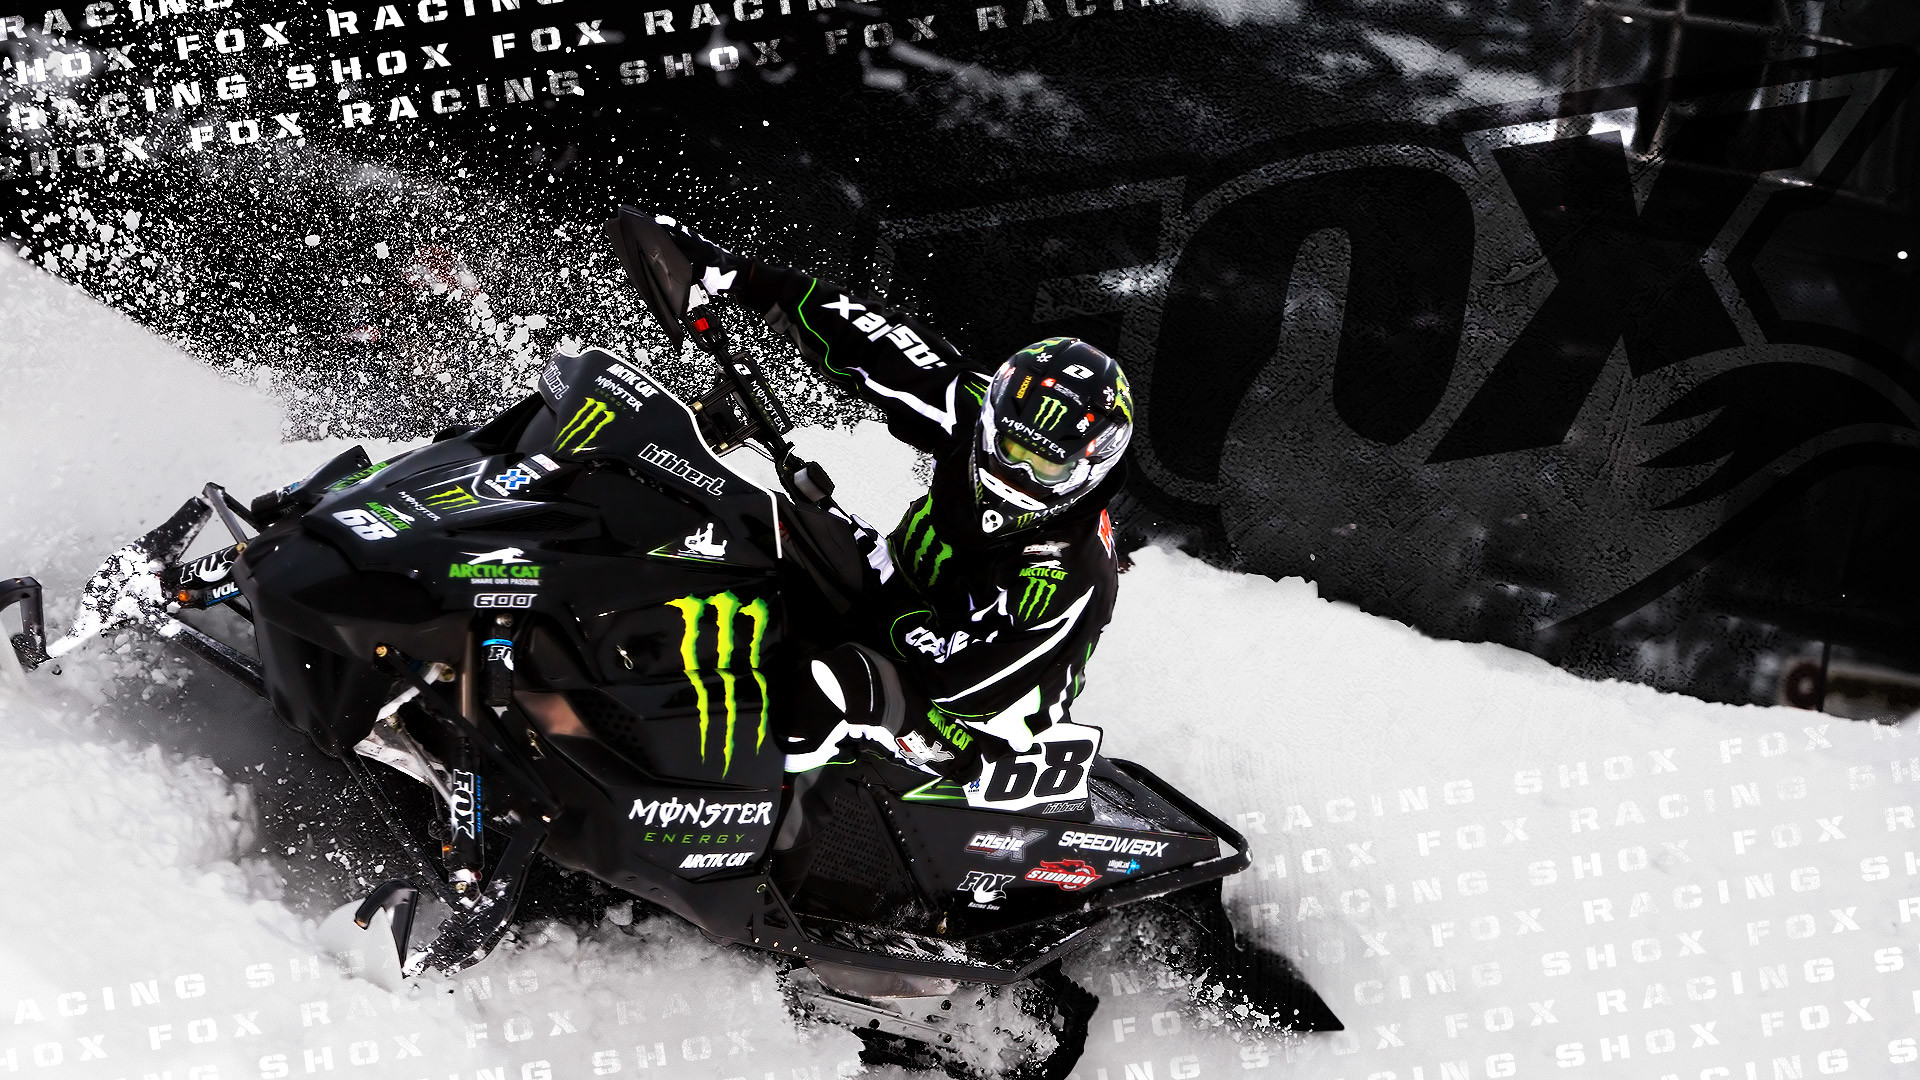 1920x1080 Blue Monster Energy Drink Wallpaper Cool Car Wallpapers For Your